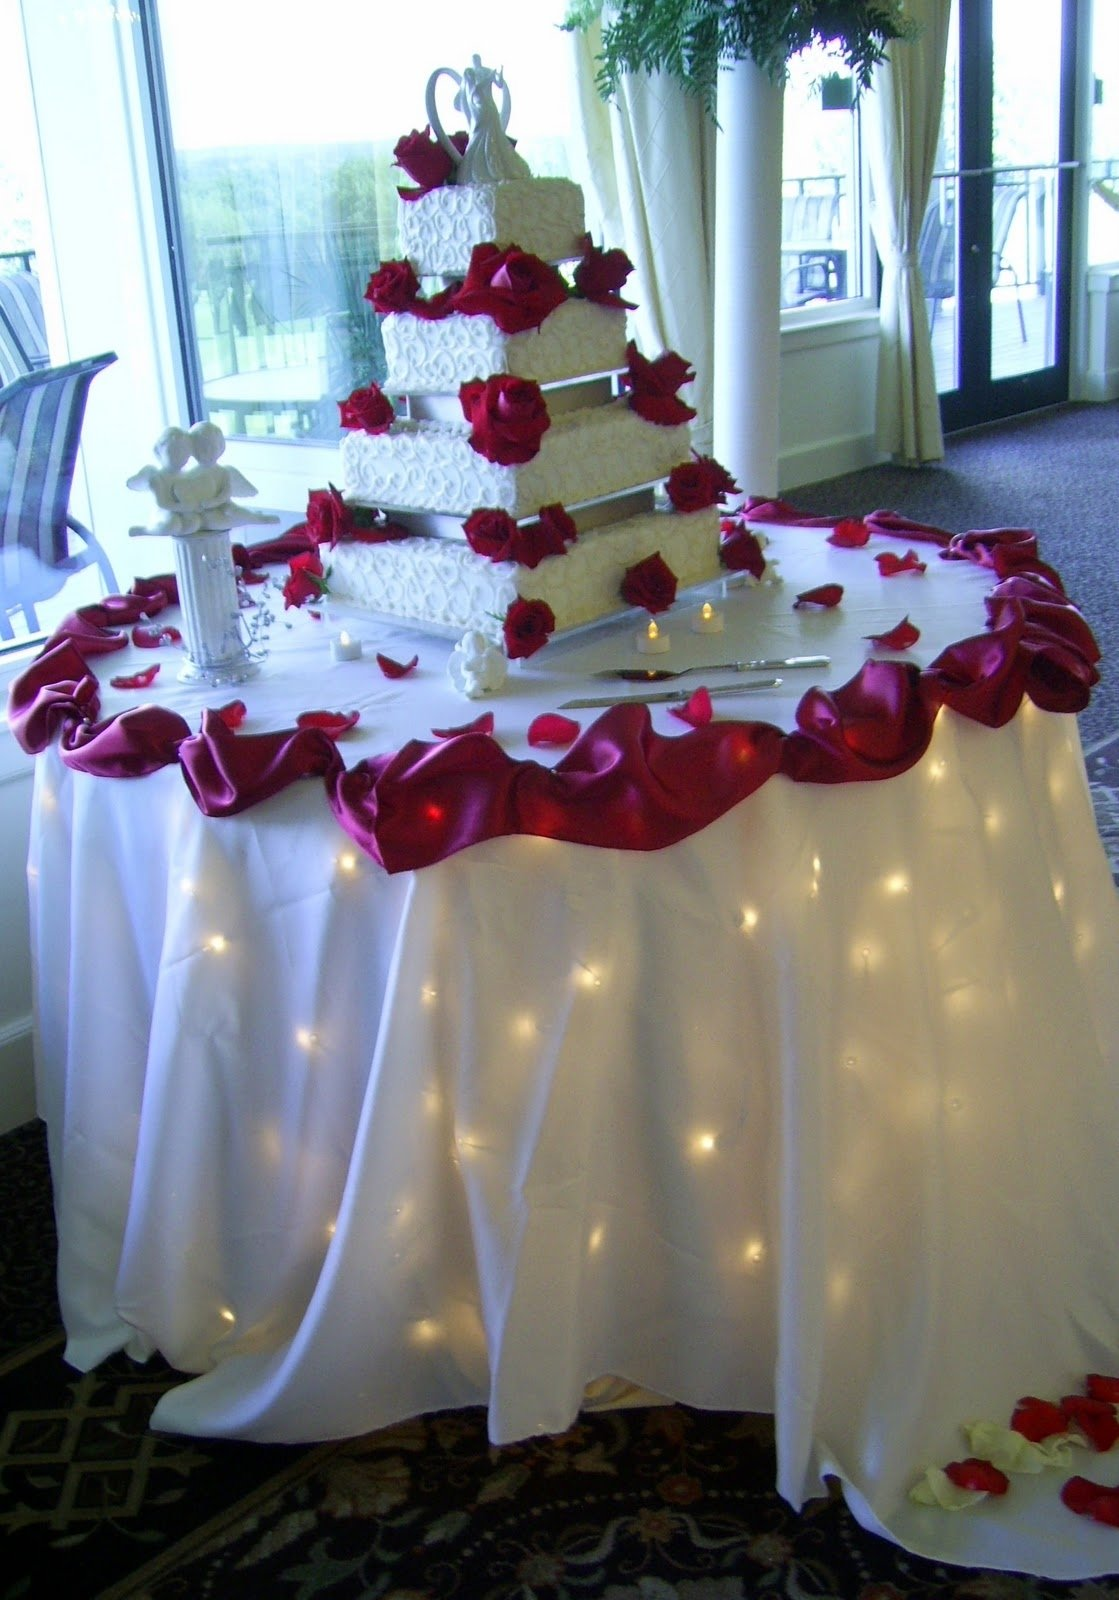 Fantastic Wedding Centerpiece For Bride And Groom Table Crest